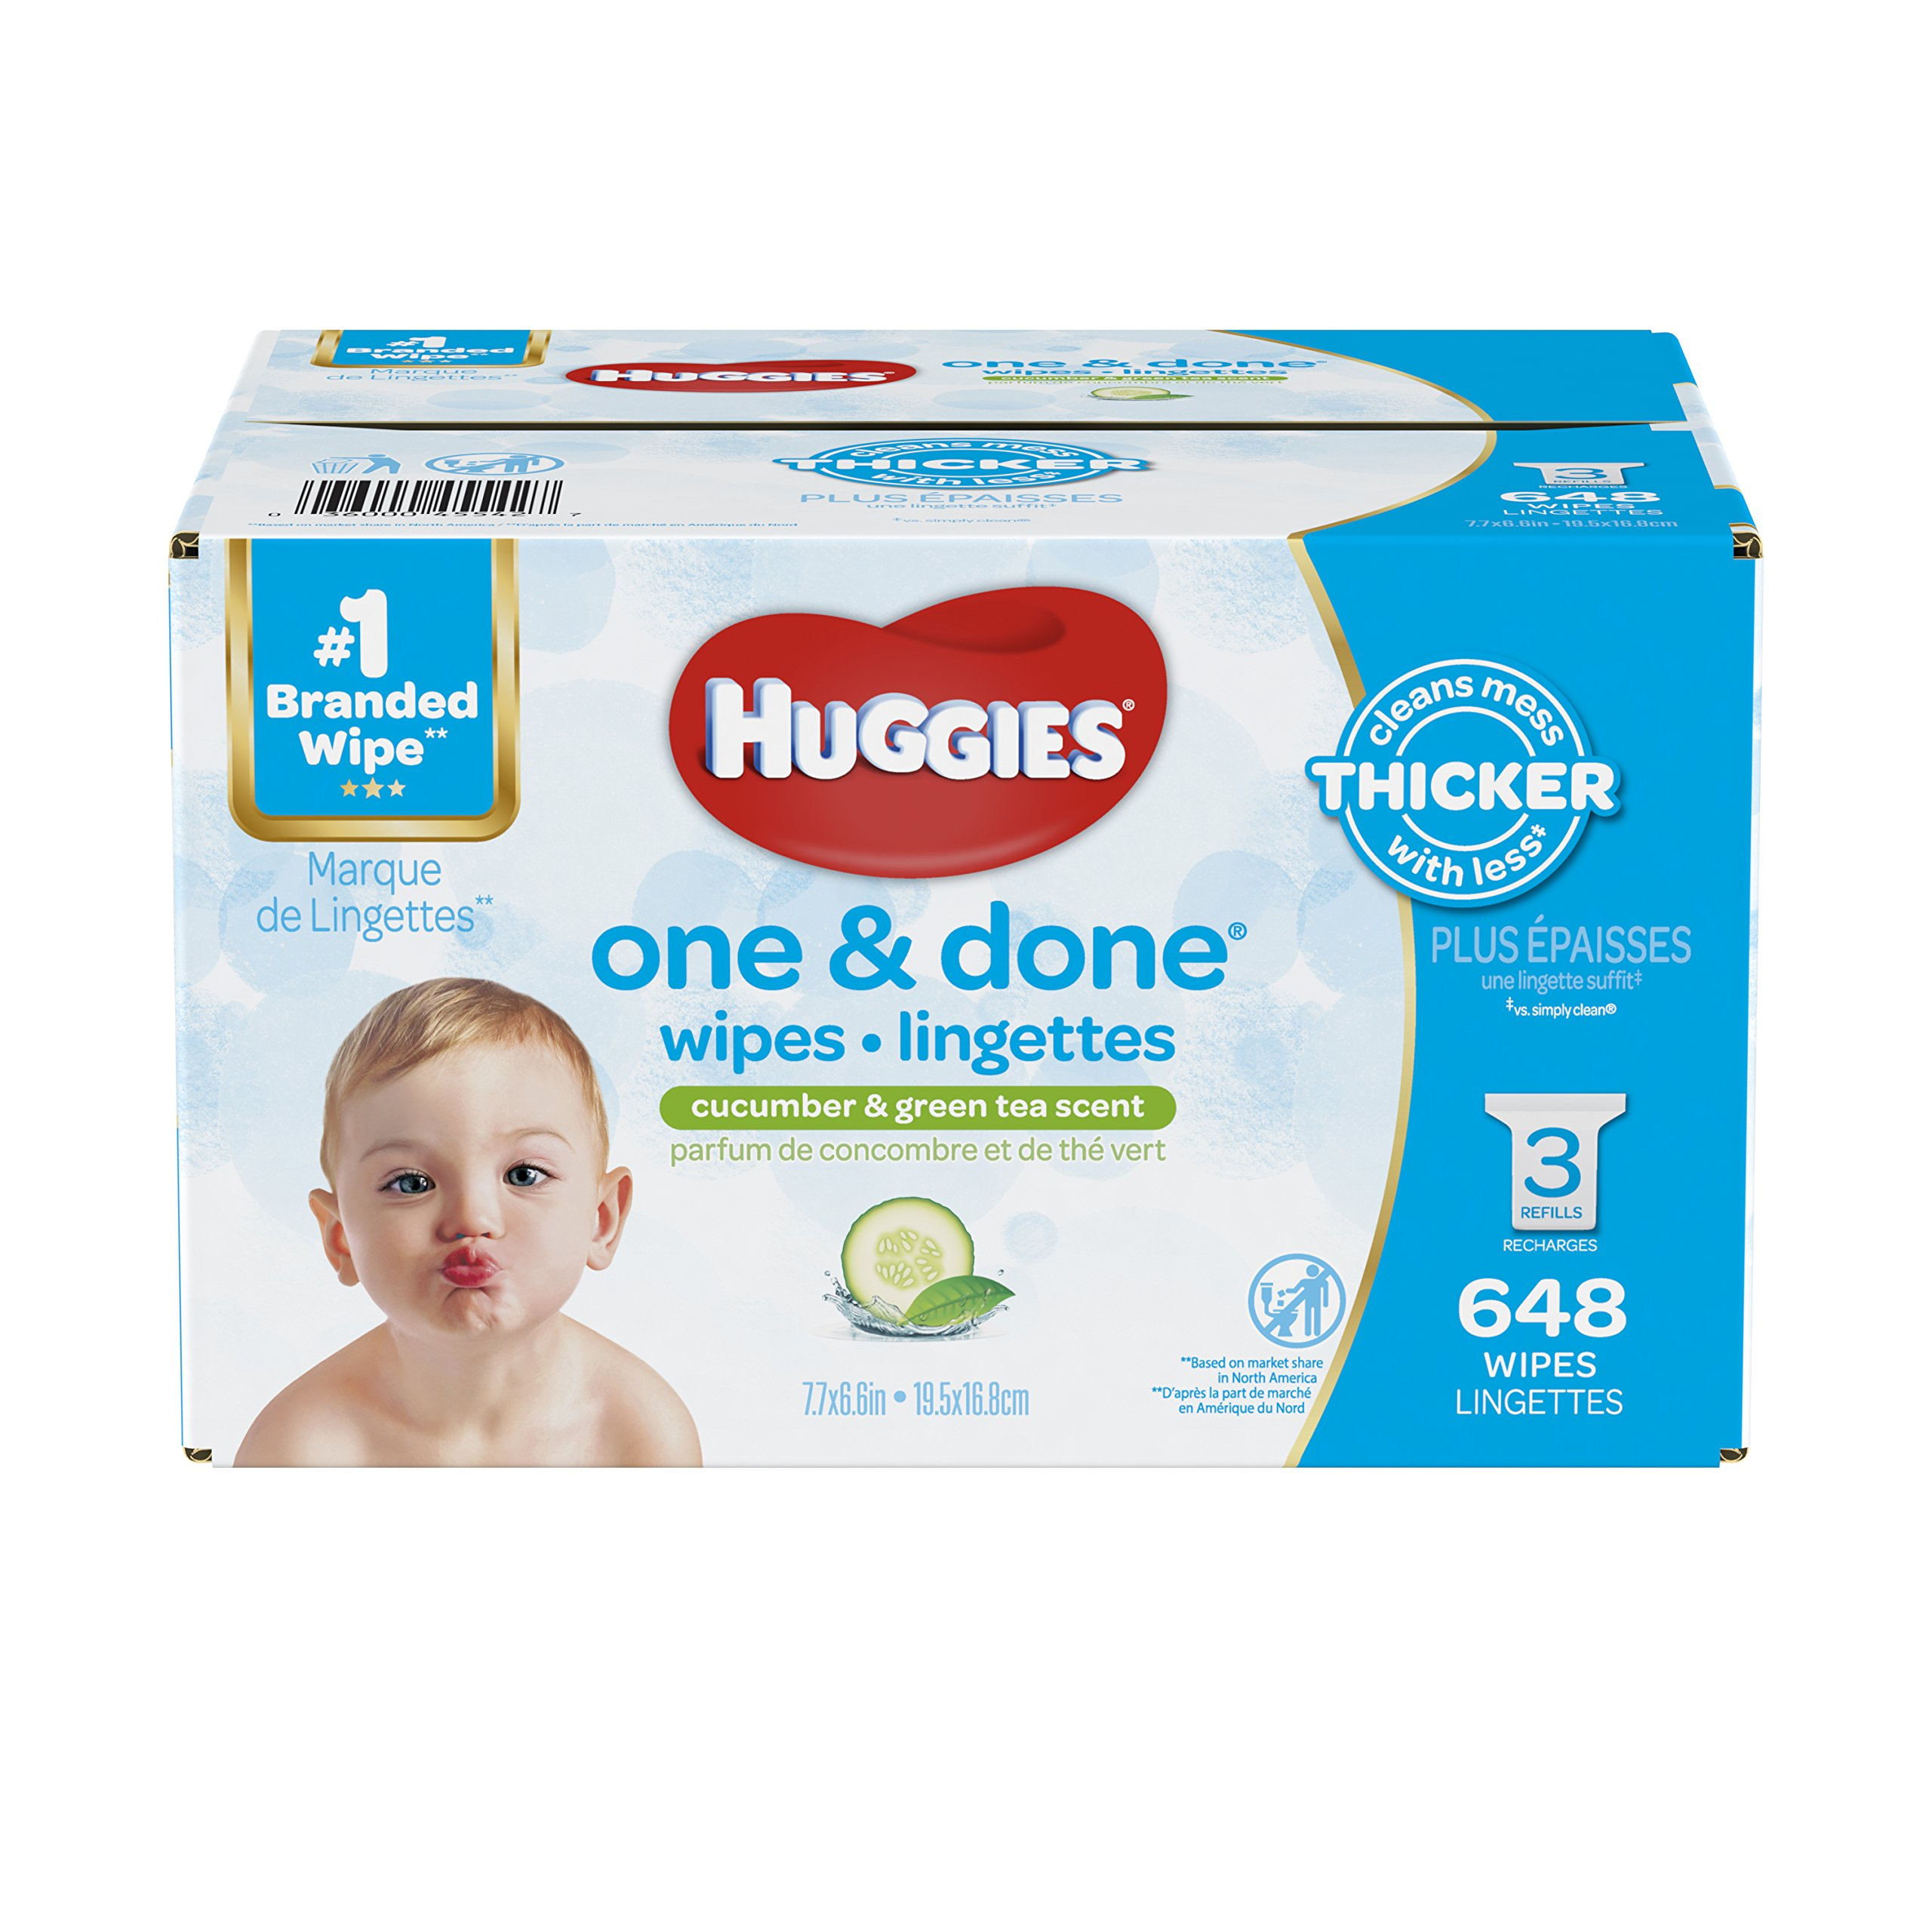 HUGGIES One & Done Scented Baby Wipes, Hypoallergenic, 3 Refill Packs, 648 Count Total by HUGGIES